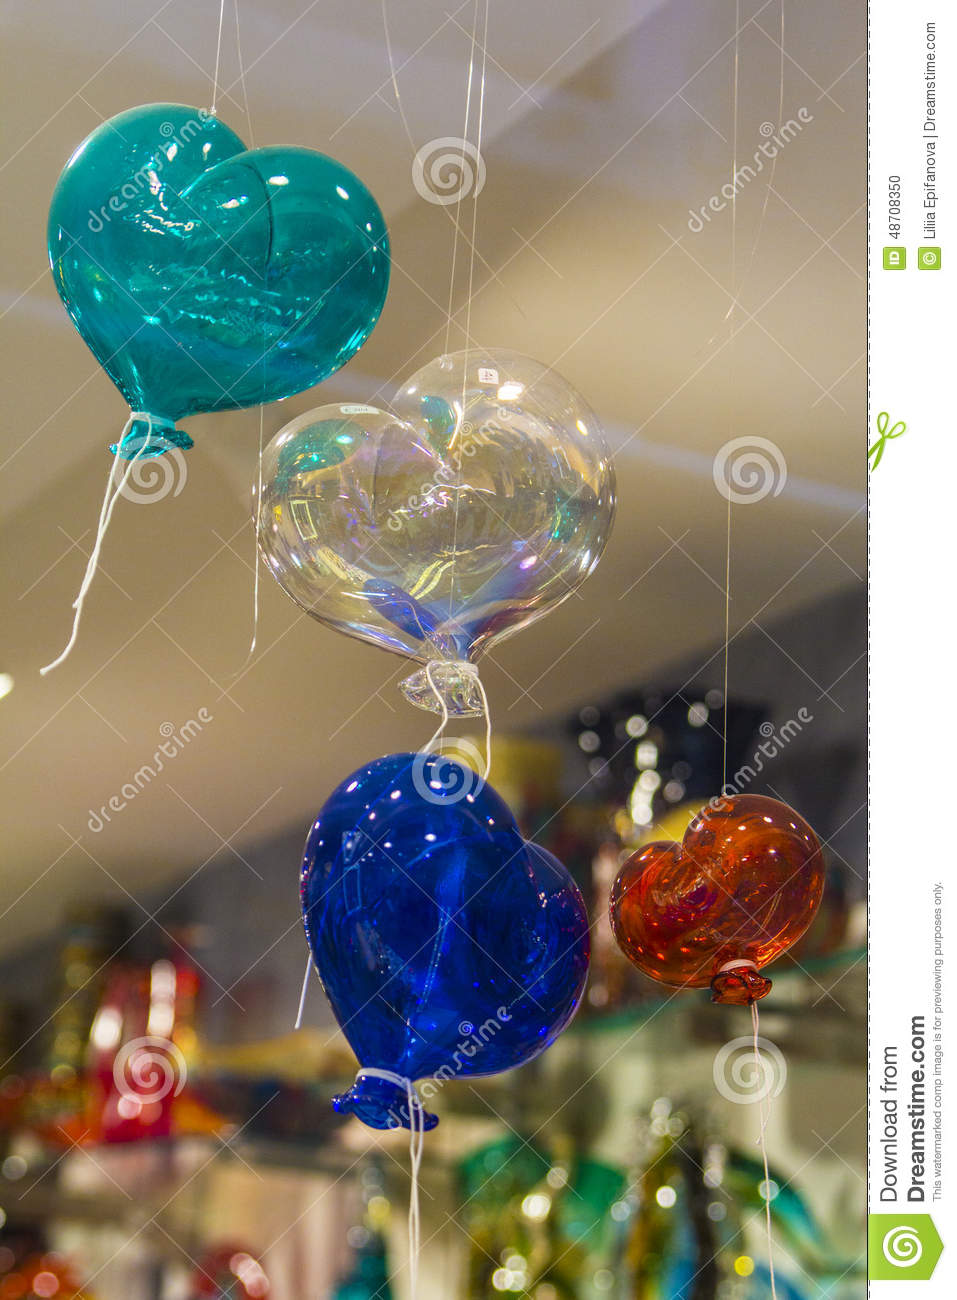 ballons sous forme de verre de murano de coeurs photo stock image 48708350. Black Bedroom Furniture Sets. Home Design Ideas